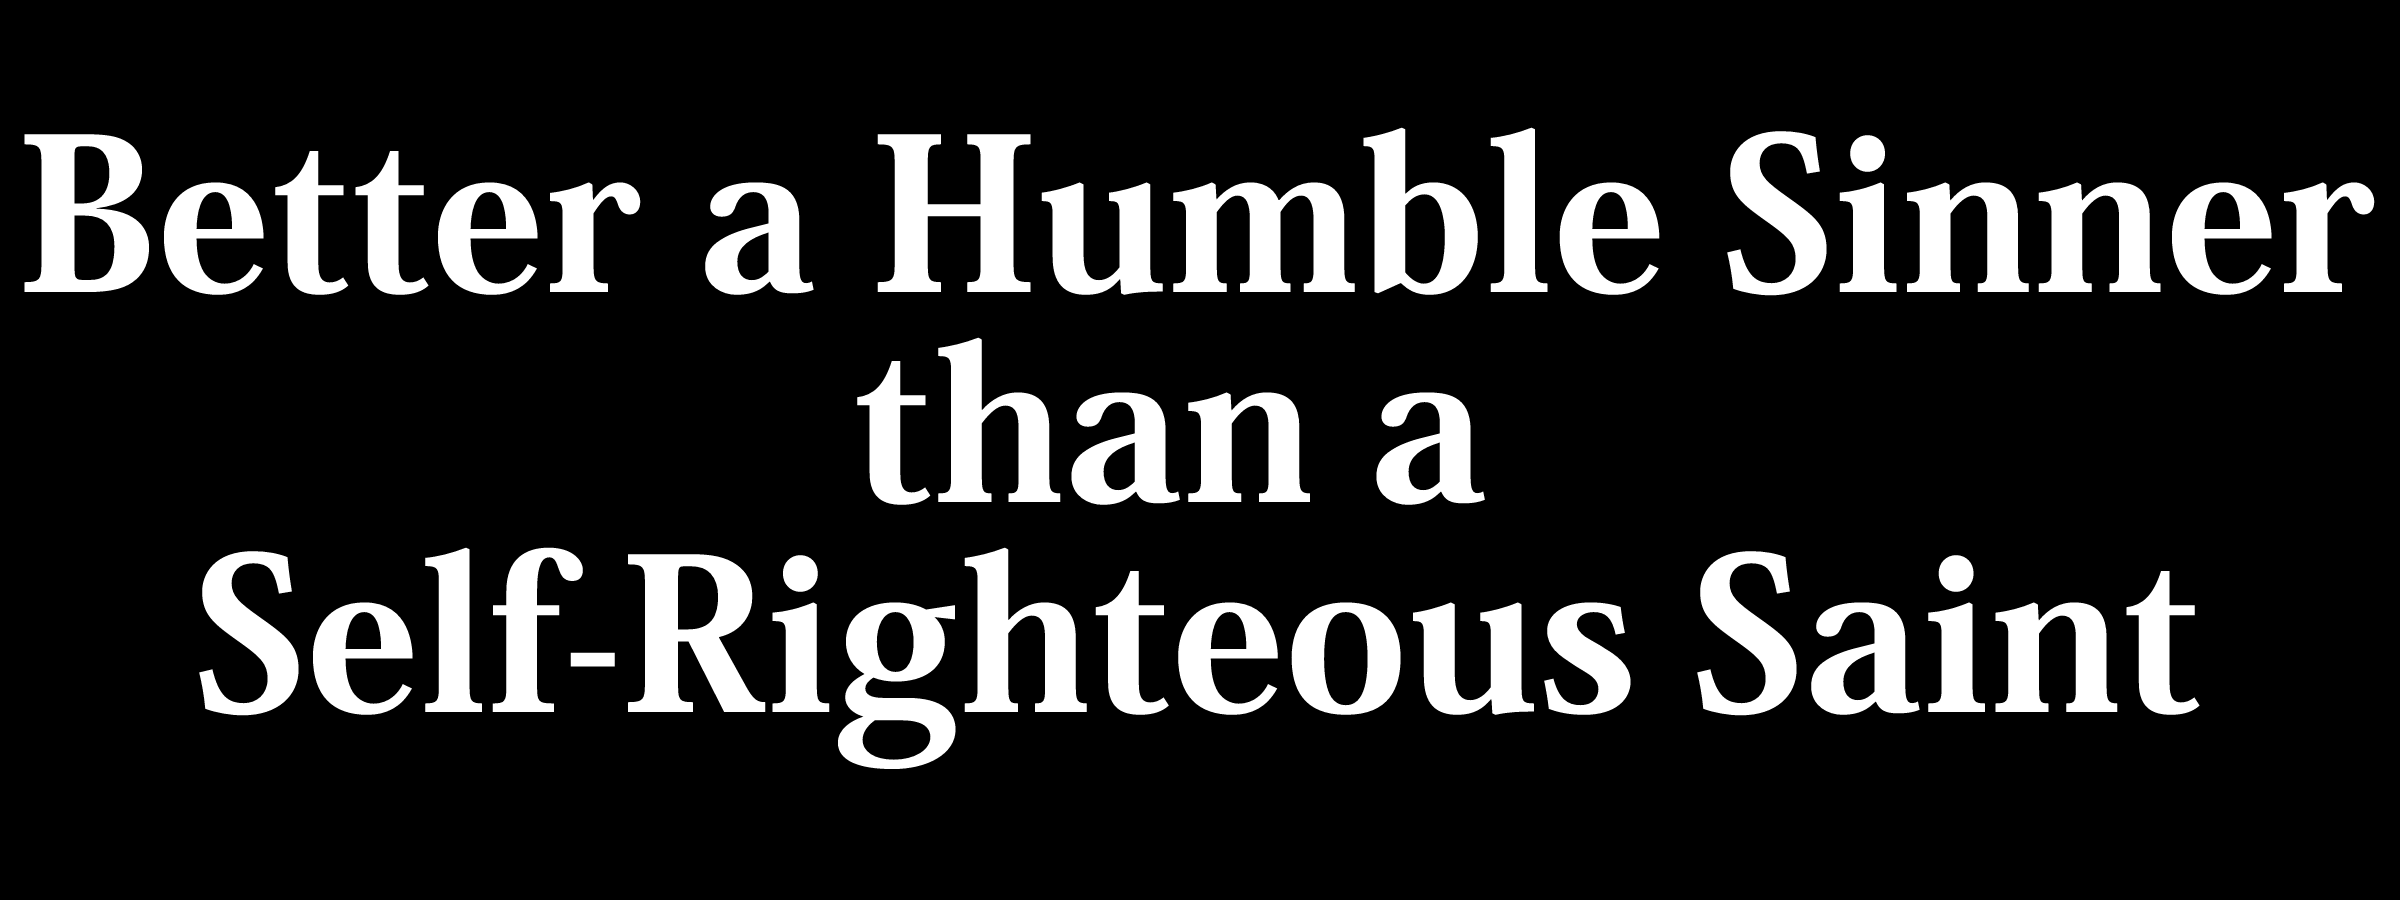 Appropriate Misgivings Funny Bumper Sticker Quotes And Sayings Humble Quotes Self Righteous Quotes Sinner Quotes